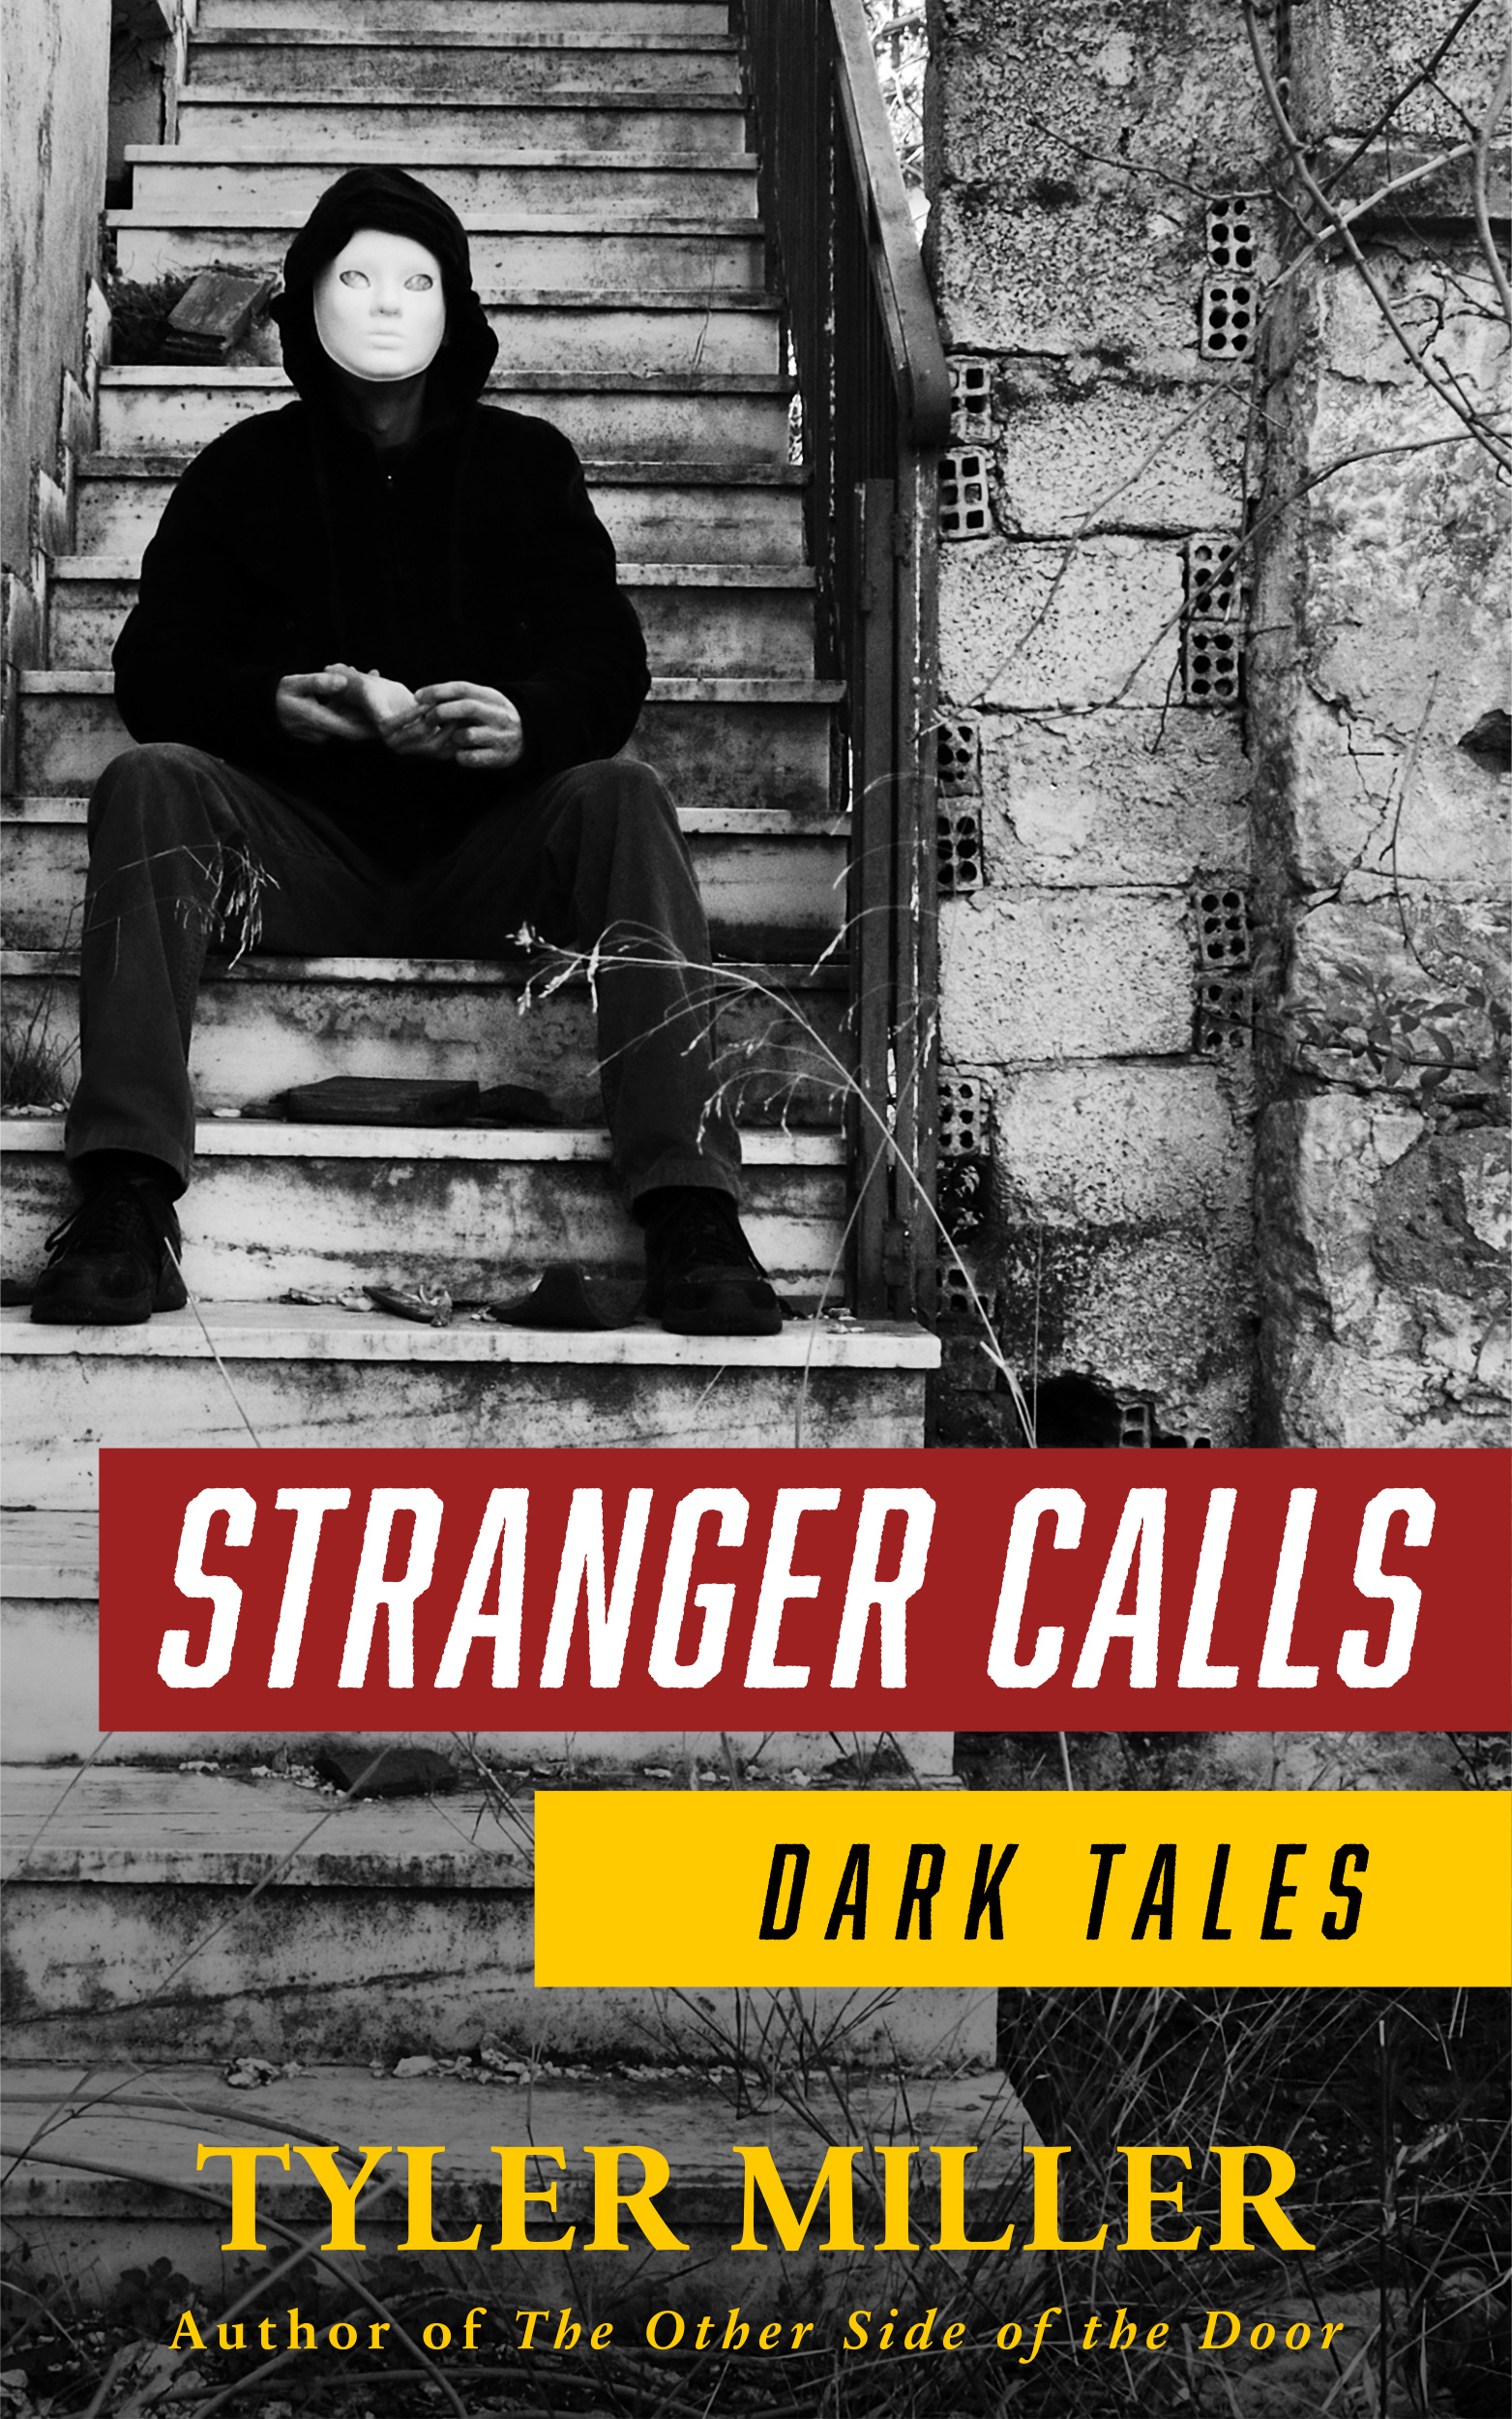 Stranger calls dark tales the black cat moan paperback and ebook available now fandeluxe Images